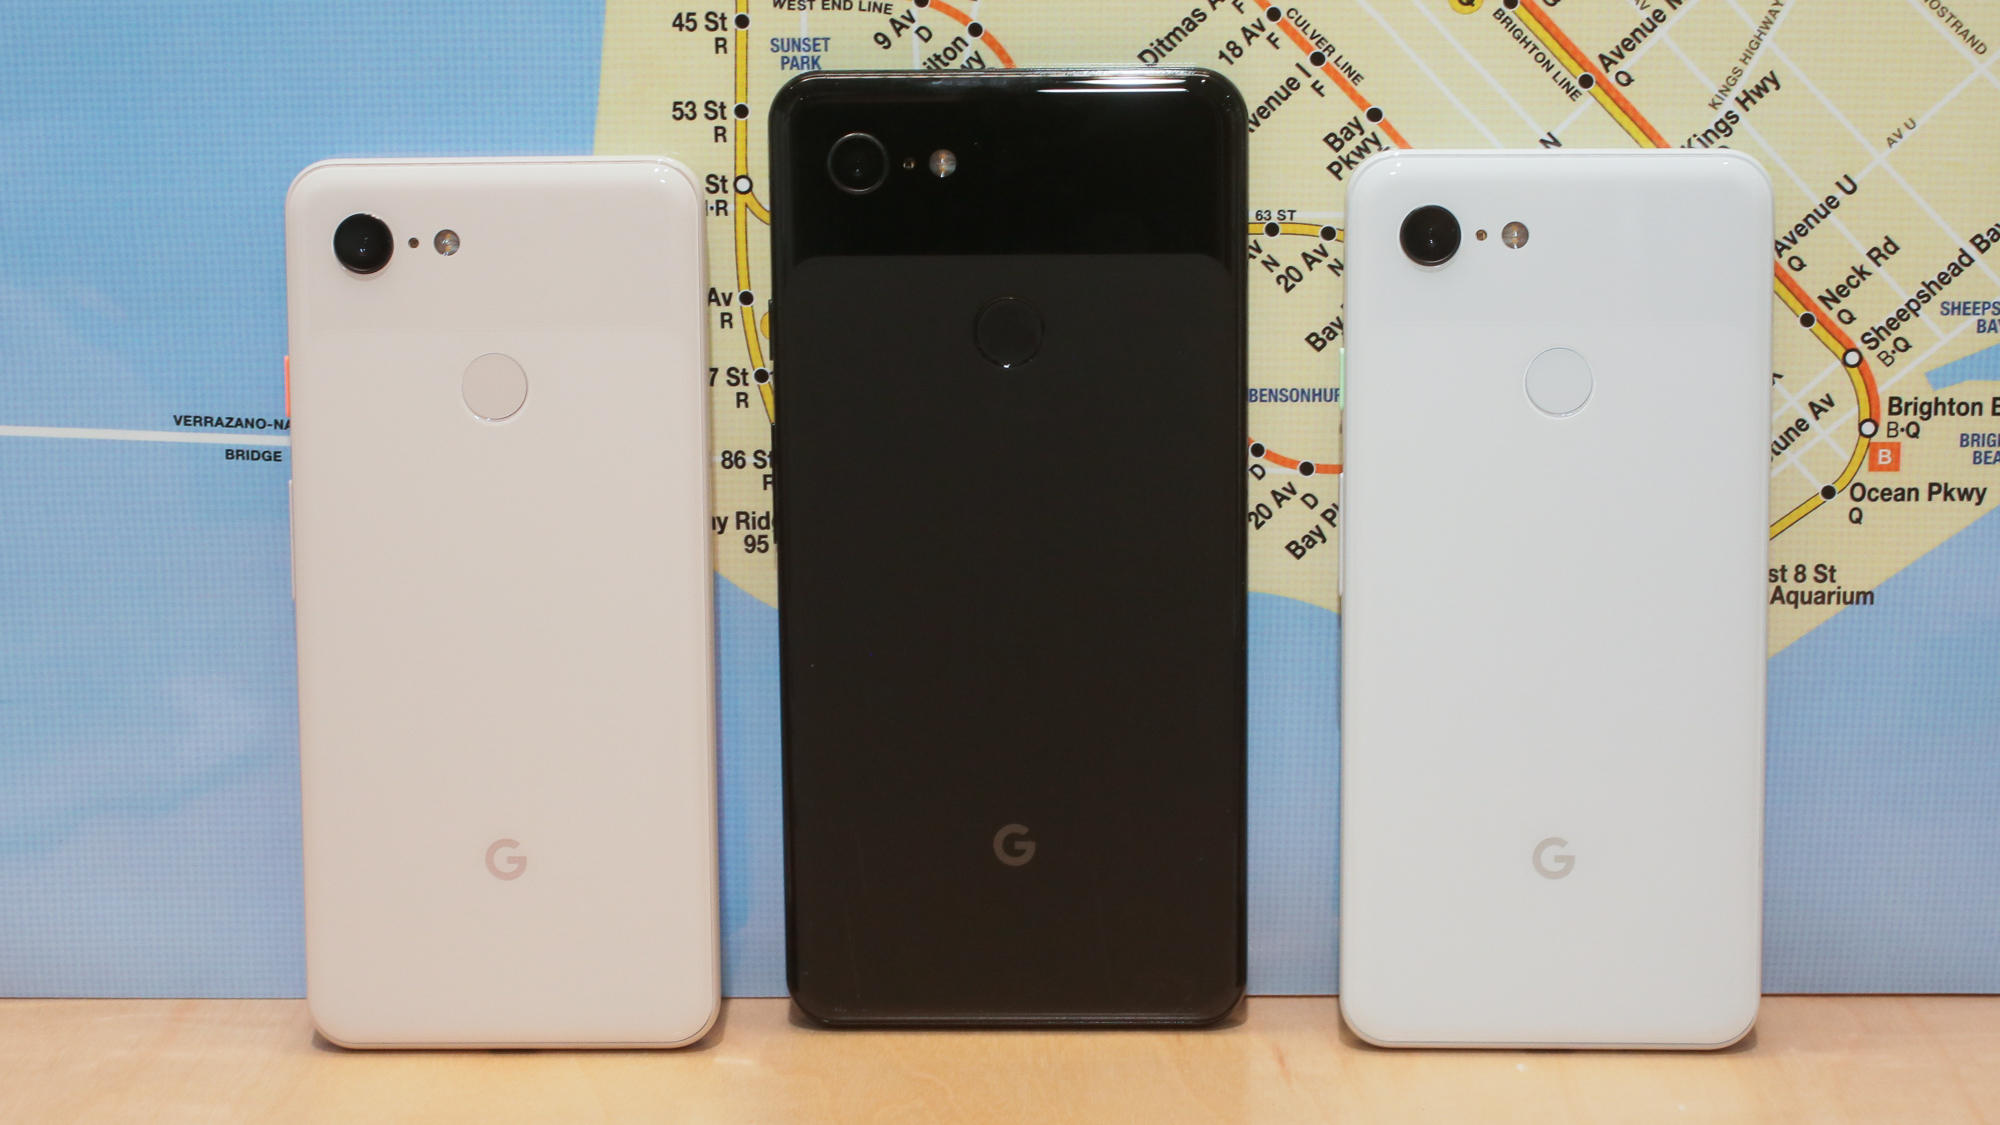 The Pixel 3 phone available colors